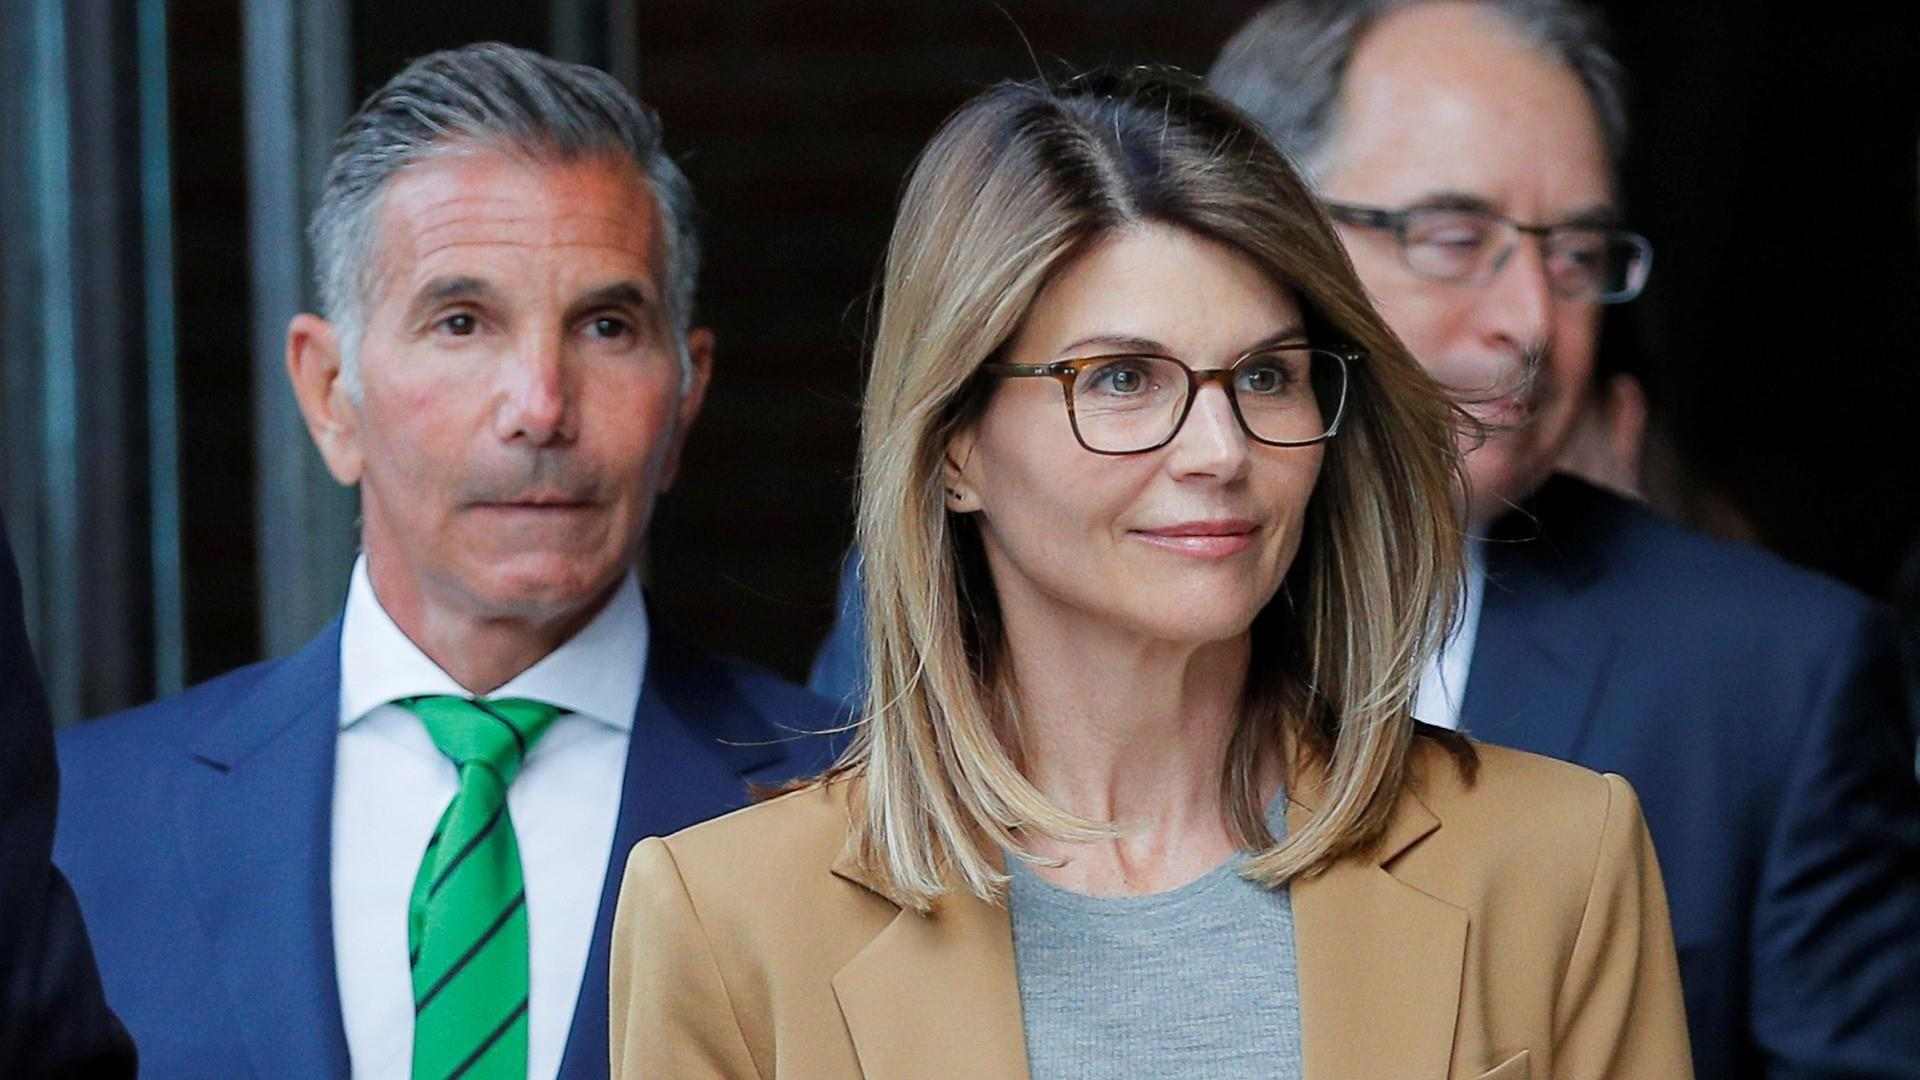 College admissions scandal: Lori Loughlin's latest indictment likely a strategy to induce plea talks